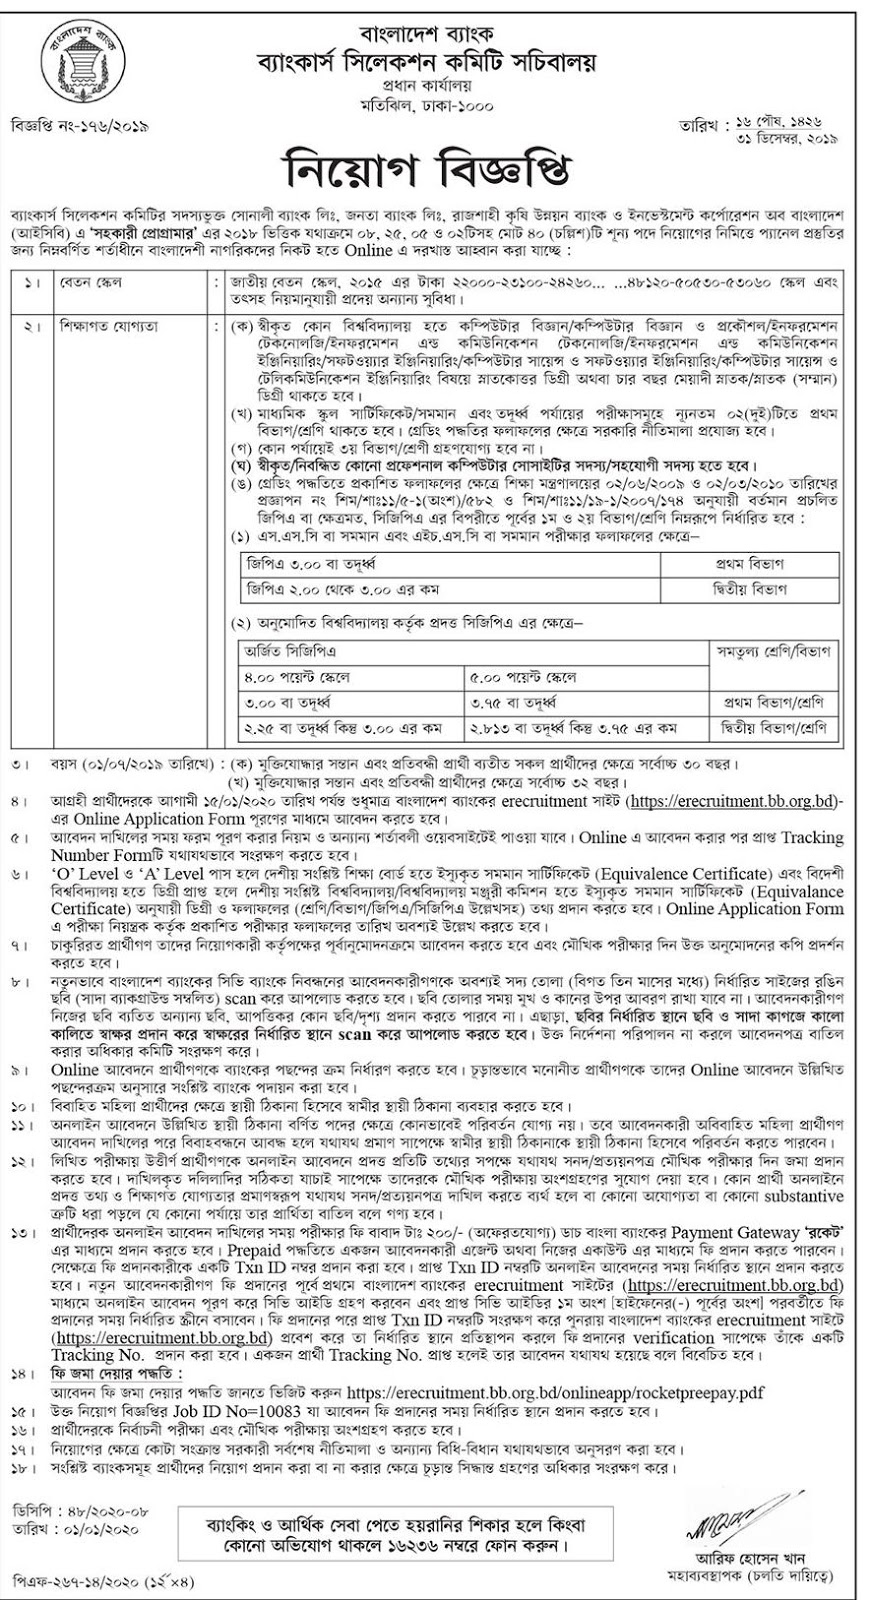 Recent Bangladesh Bank Job Circular 2020 ,recent bank job circular in bangladesh